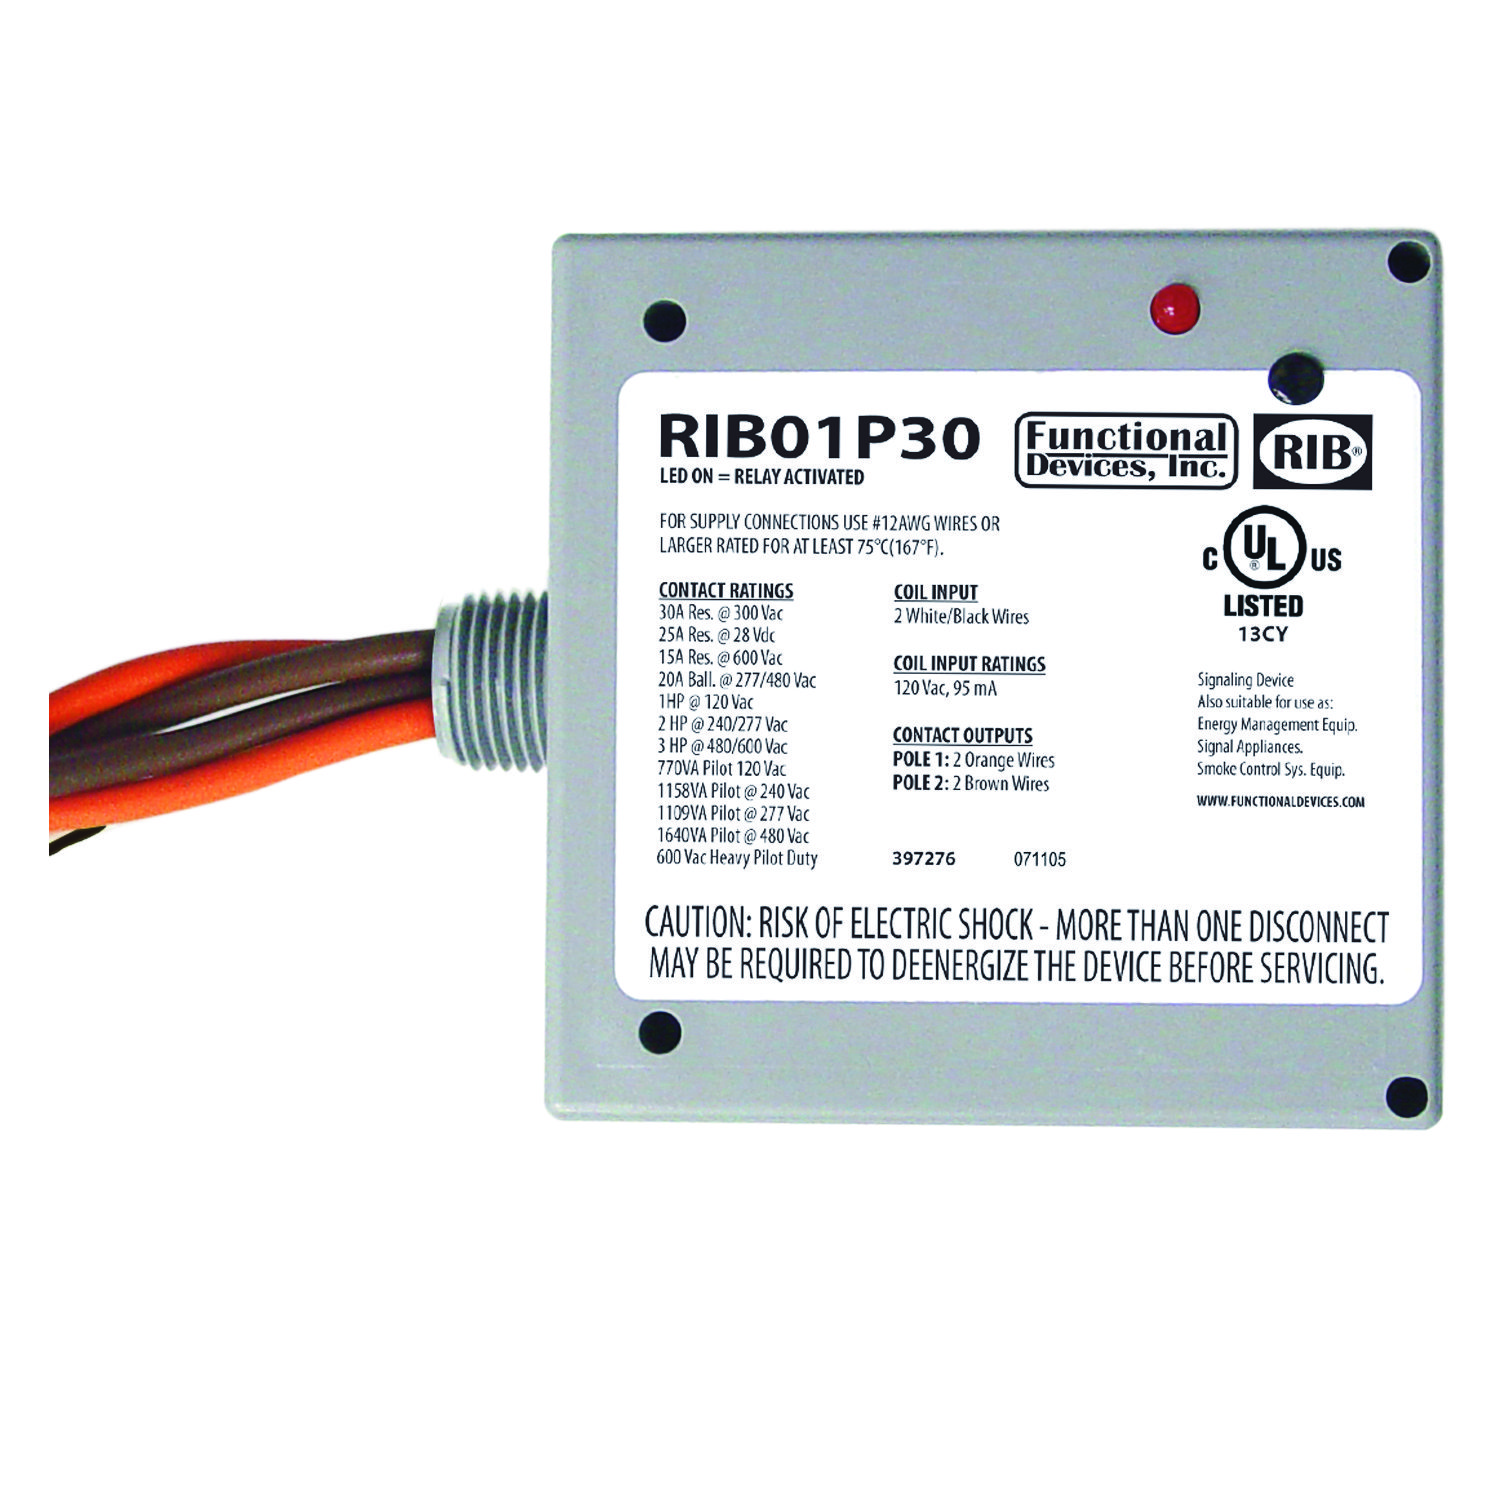 RIB01P30 - Functional Devices Enclosed Relay 30Amp DPST 120Vac